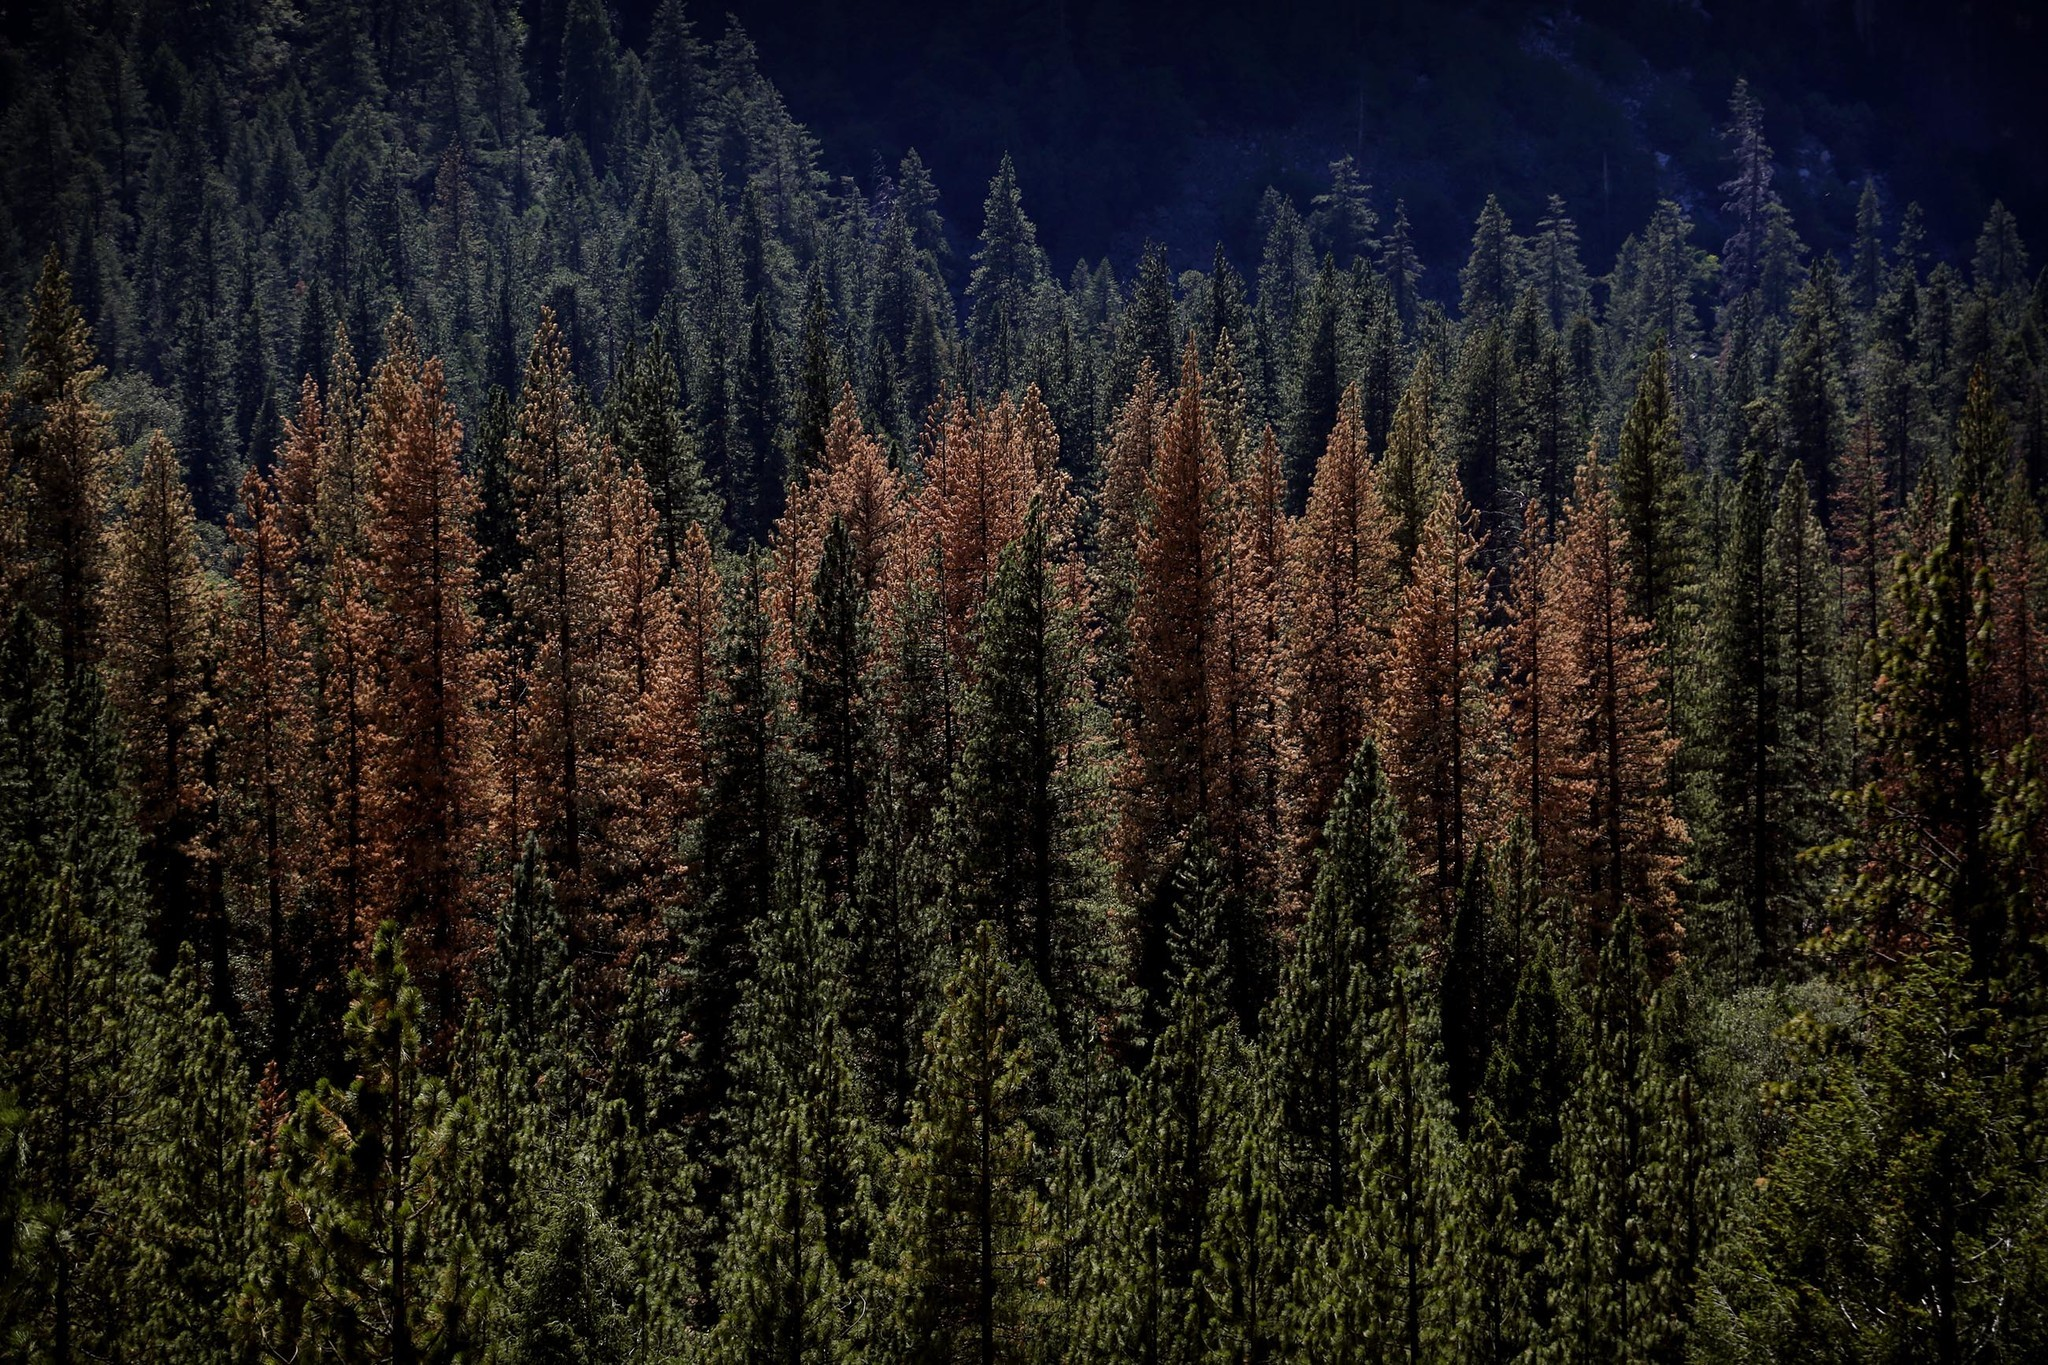 Dying trees can be seen in the Yosemite forest on Aug. 15, 2015.